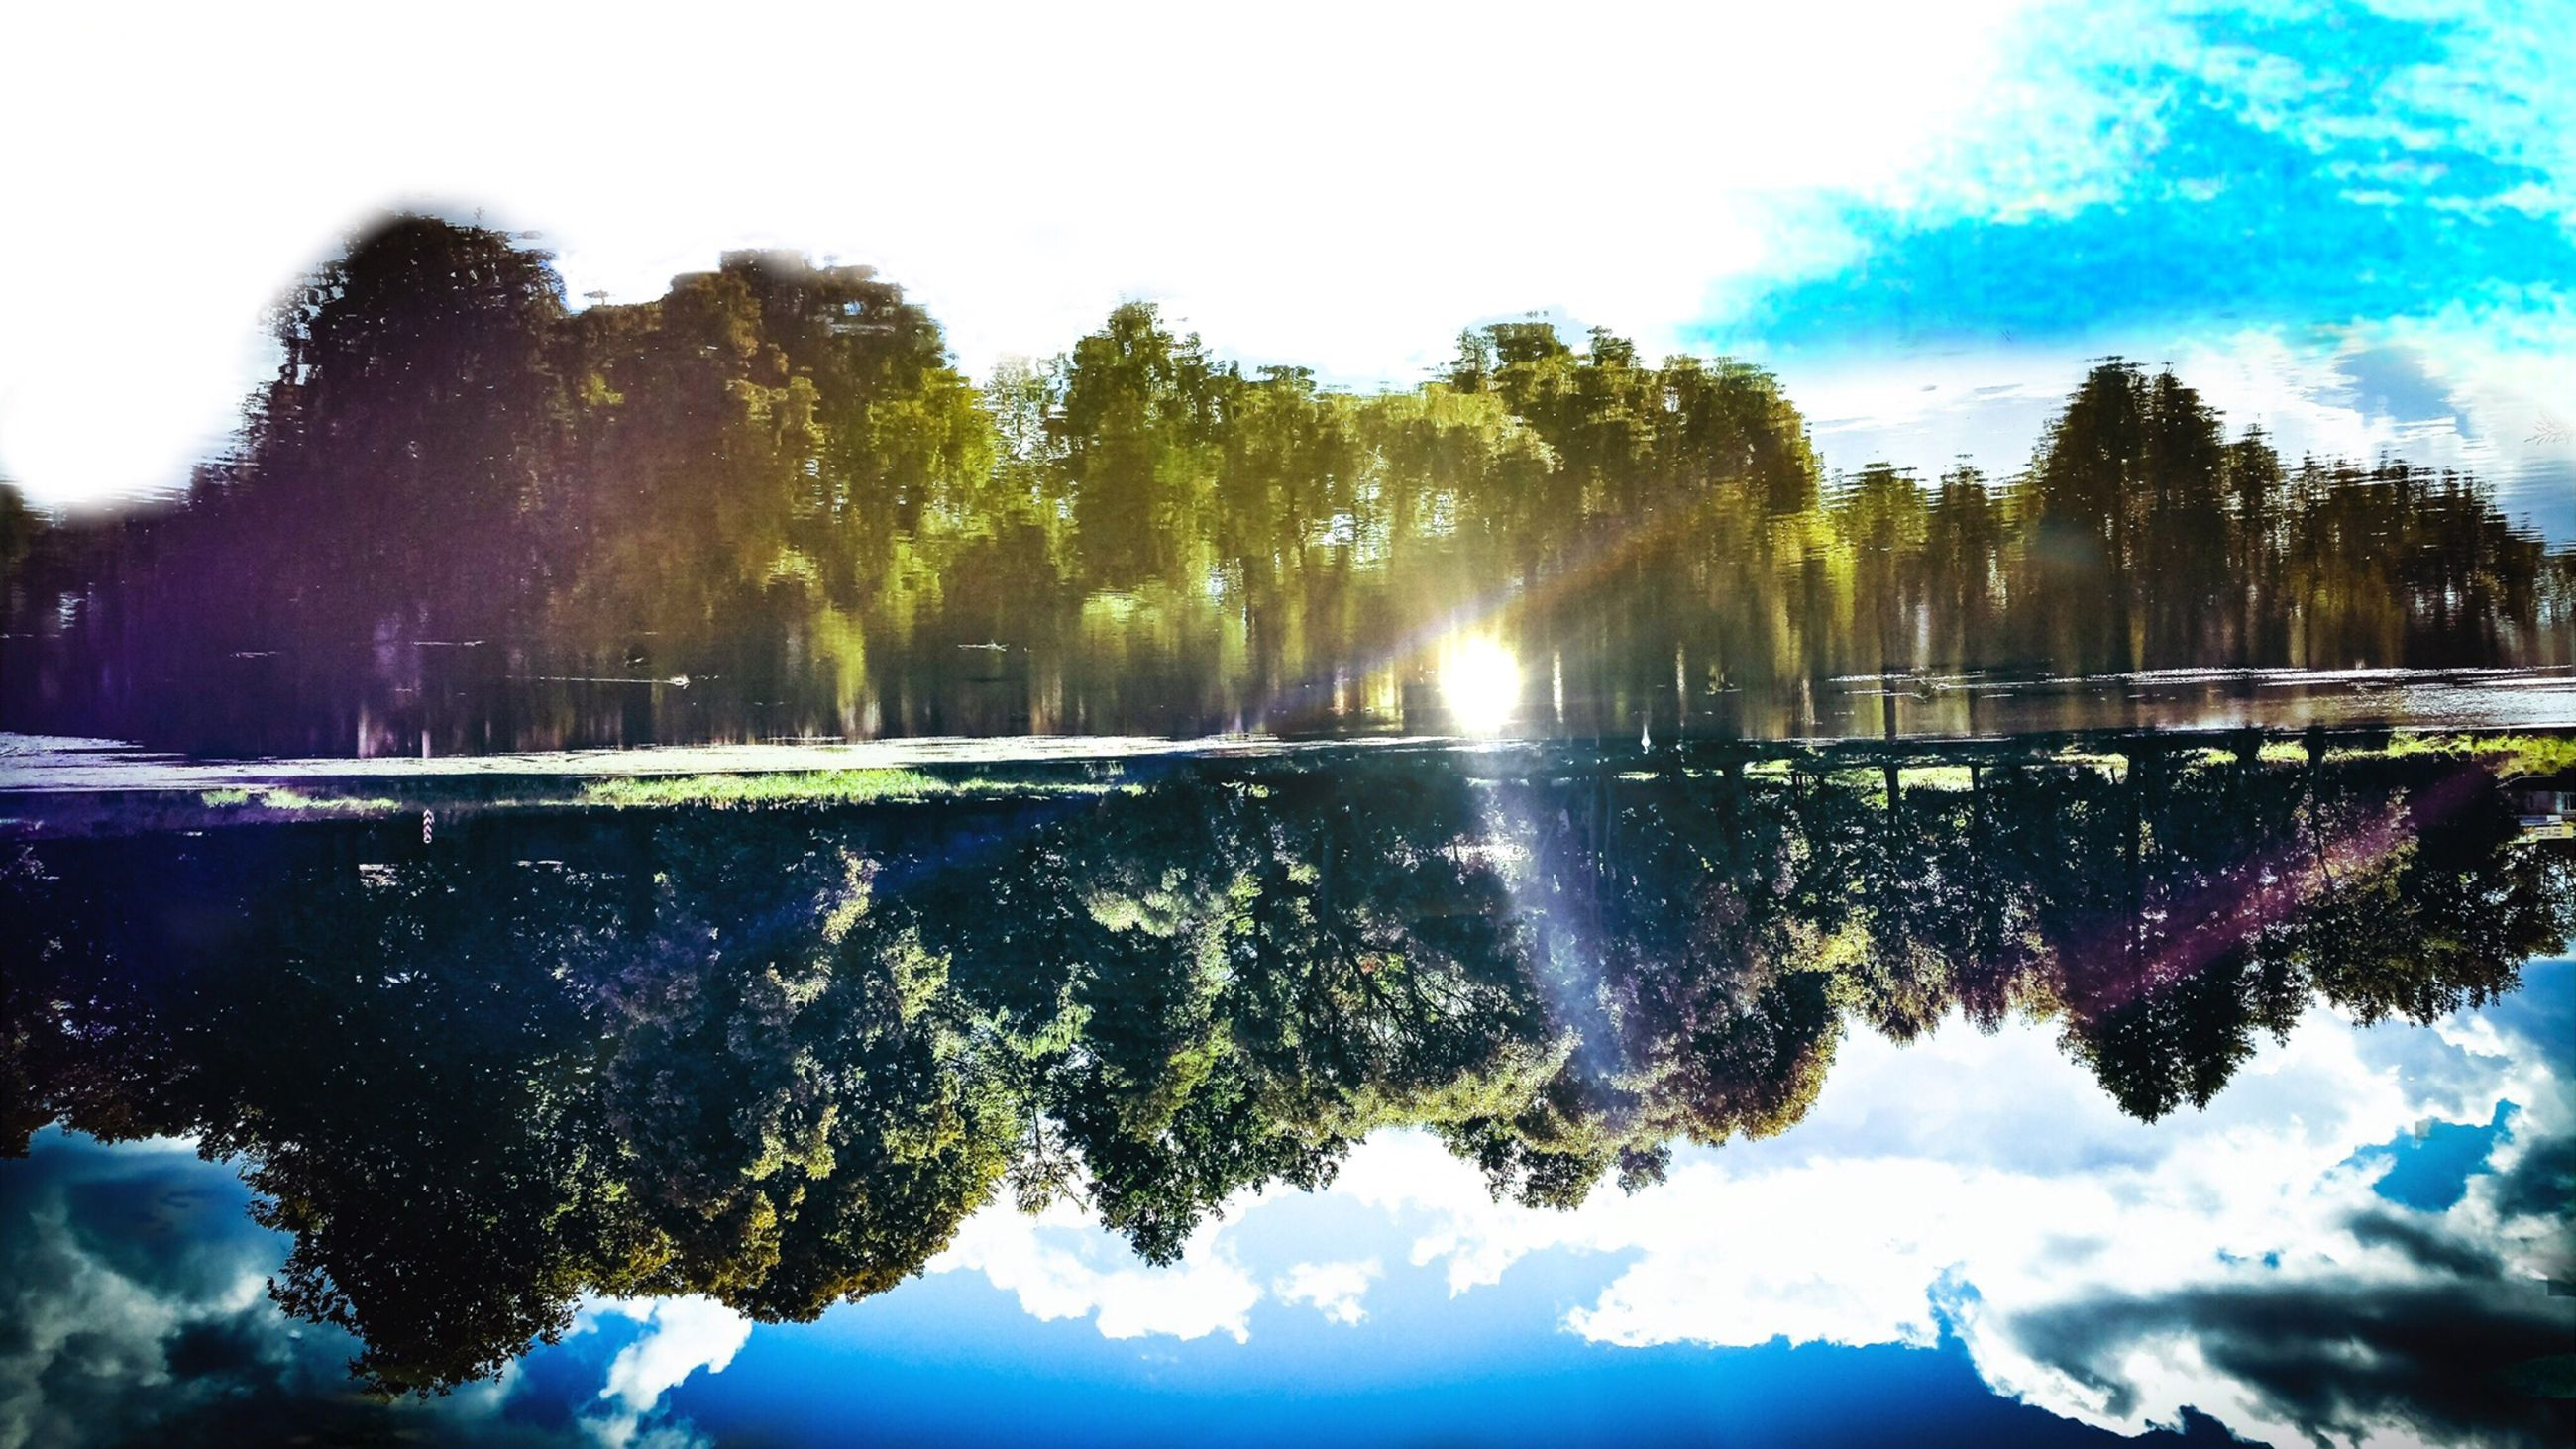 reflection, tree, water, nature, sky, scenics, lake, no people, outdoors, beauty in nature, day